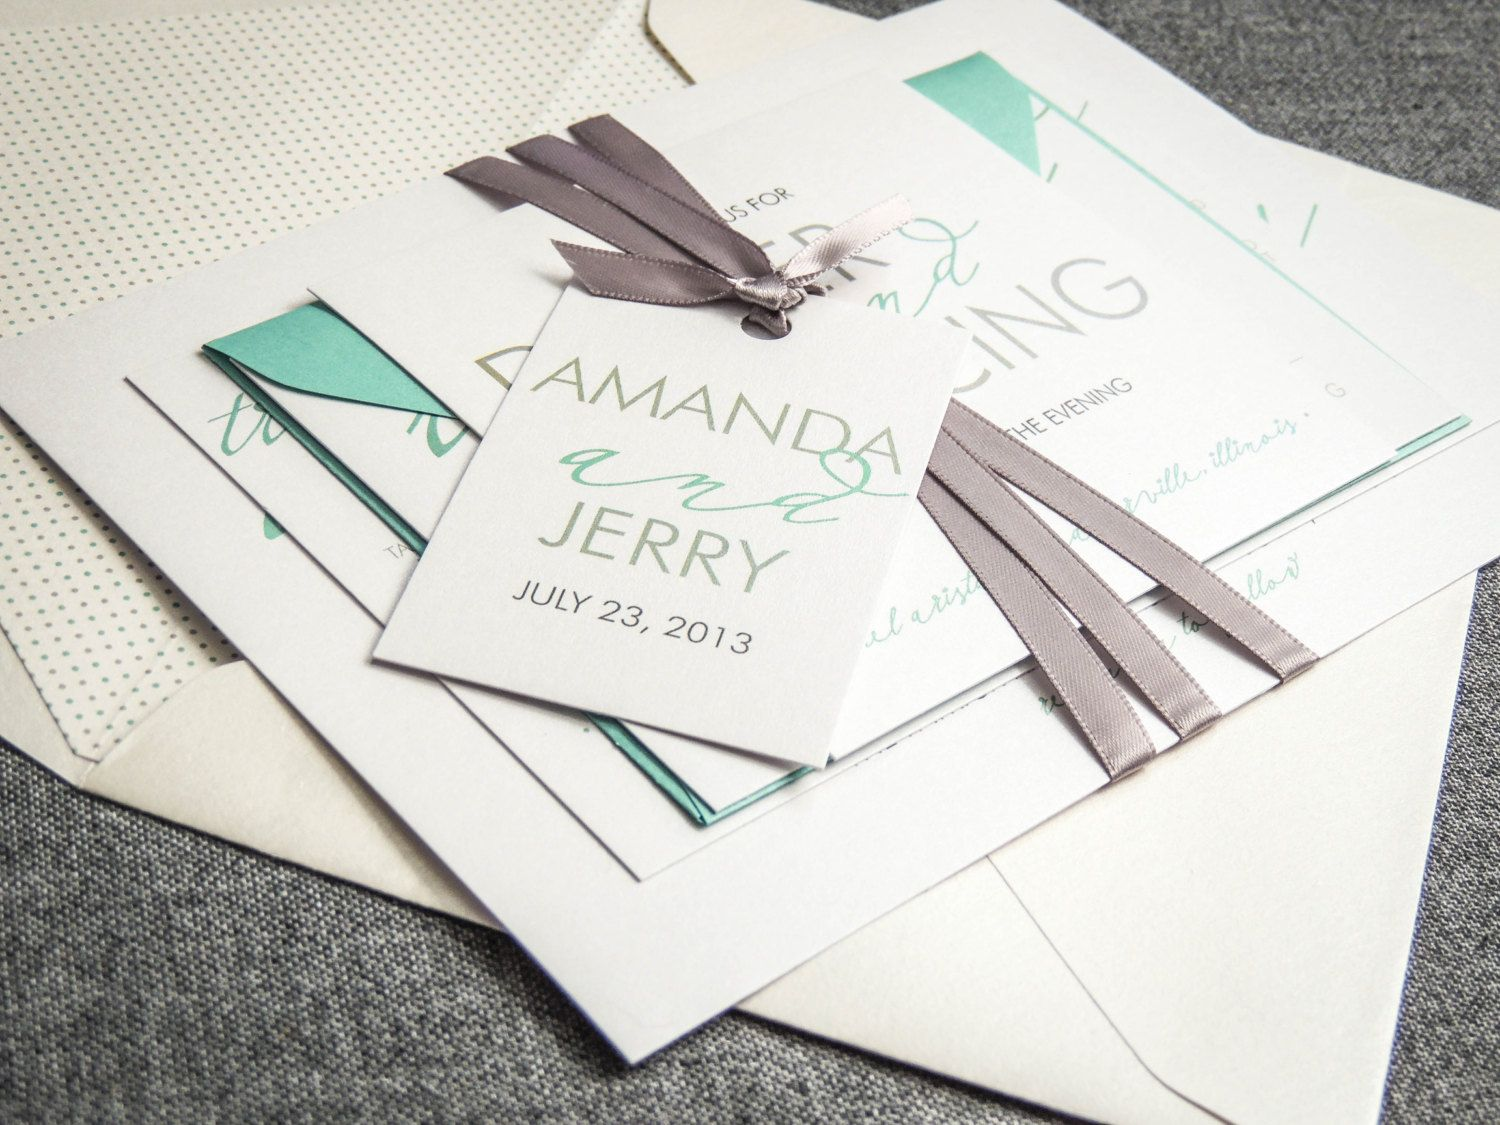 beach wedding invitation examples%0A Mint Wedding Invitations  Modern Beach Invites  Aqua  Teal  Grey    Modern  Calligraphy   Flat Panel  No Layers  v   SAMPLE